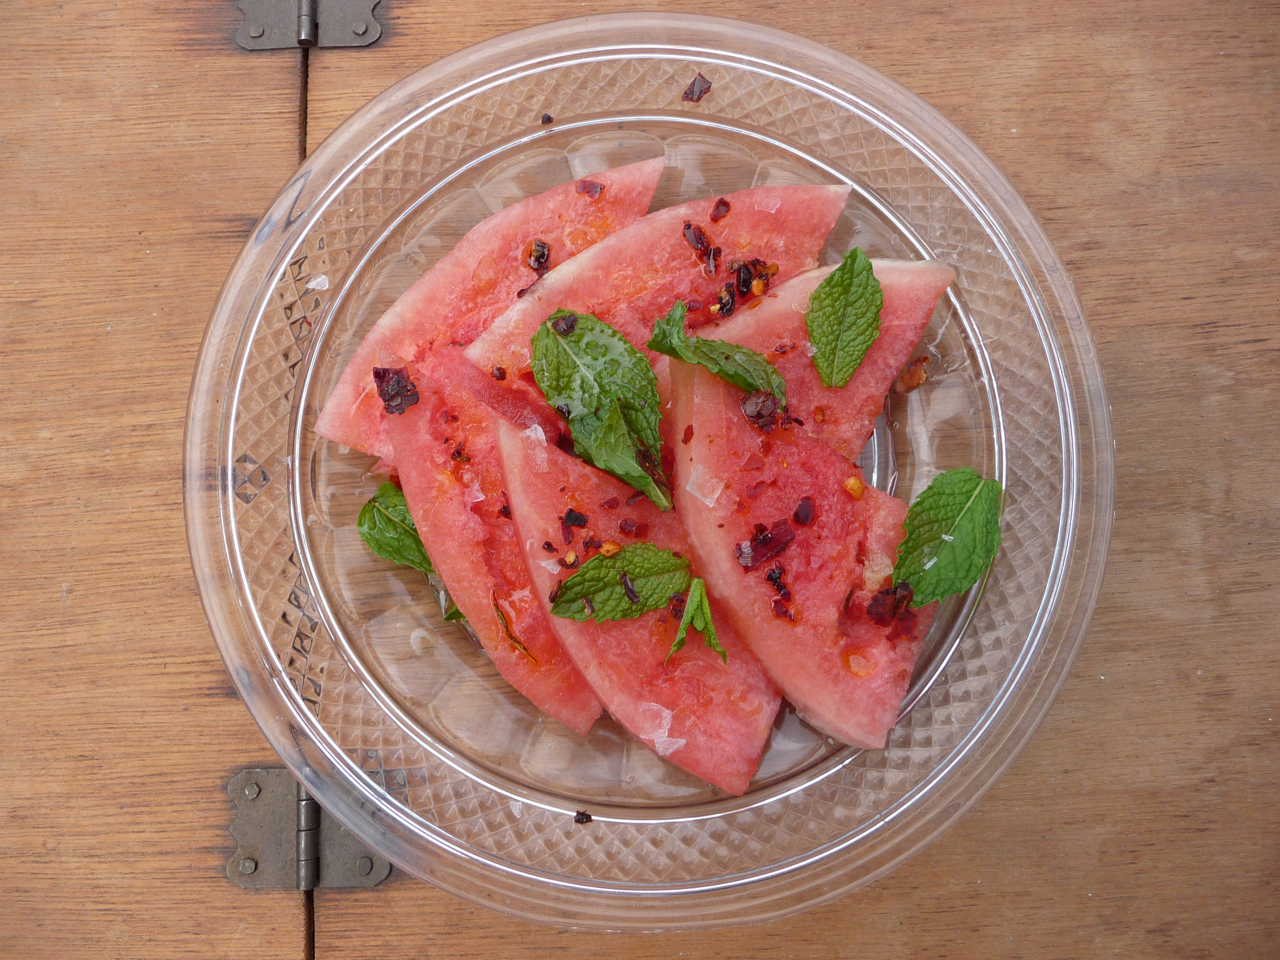 Watermelon, cut off of rind and thinly sliced